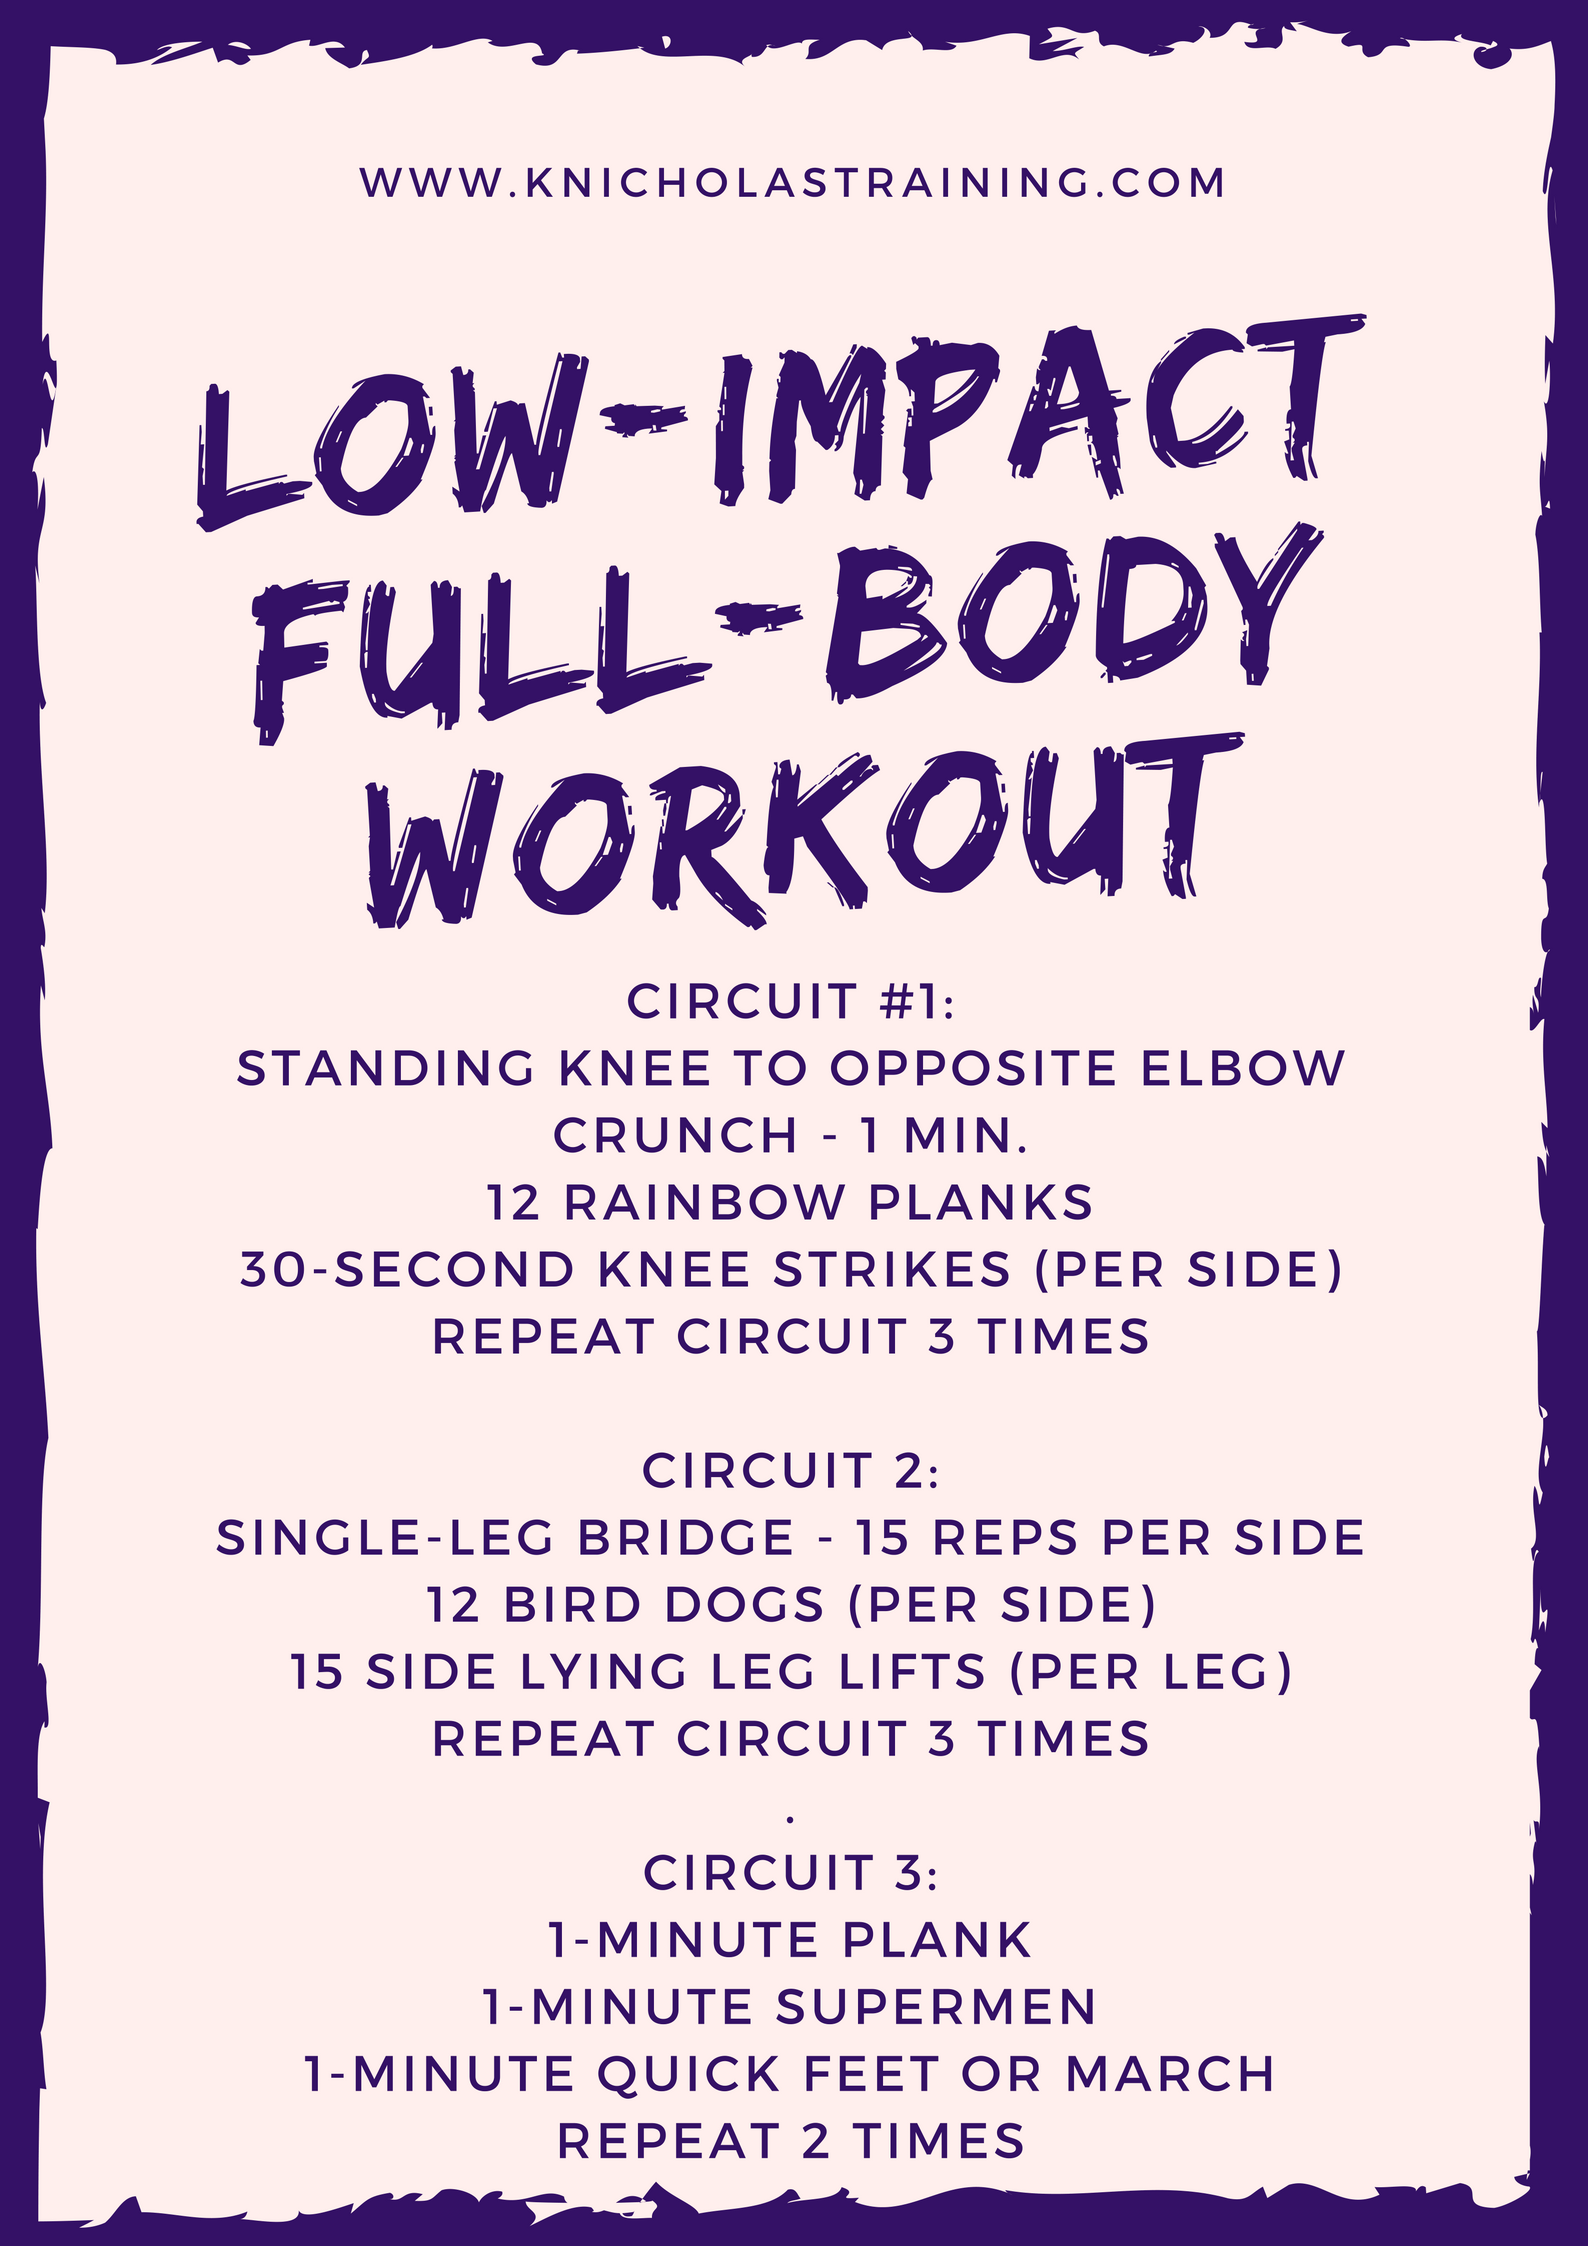 This workout is one of the most popular on my site! Click on the image for instructions on how to do the various movements.